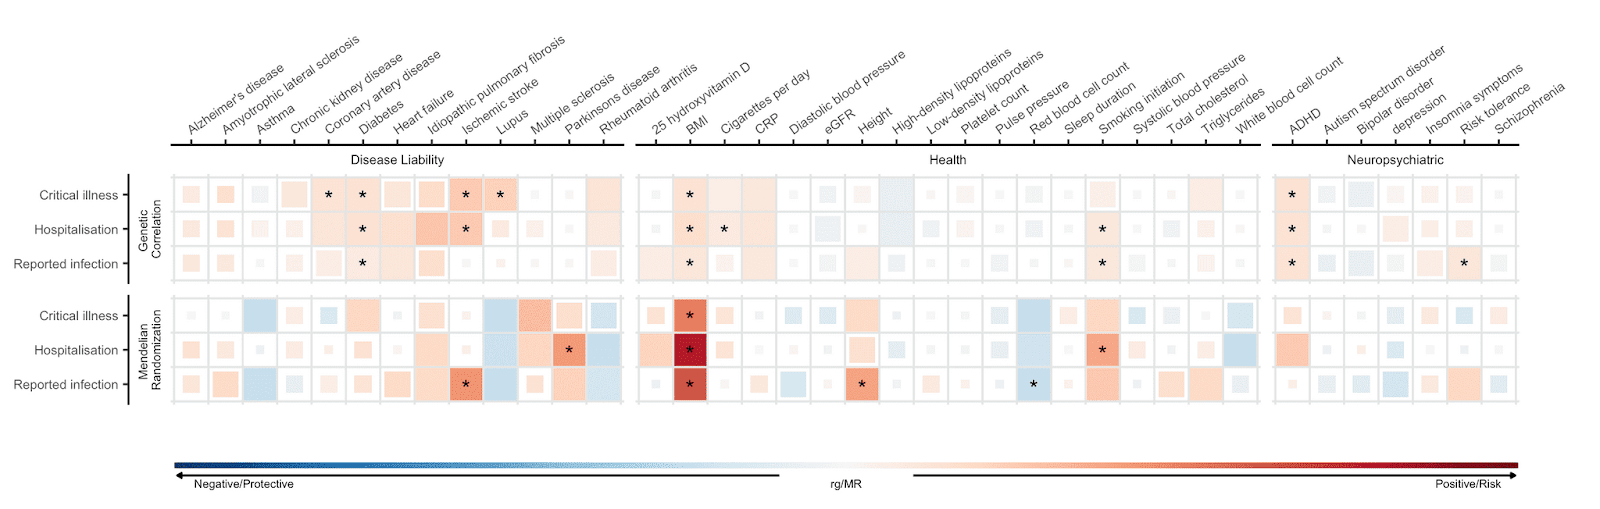 Figure 5: Genetic correlations and Mendelian randomization causal estimates between 43 traits and COVID-19 severity and SARS-CoV-2 reported infection.